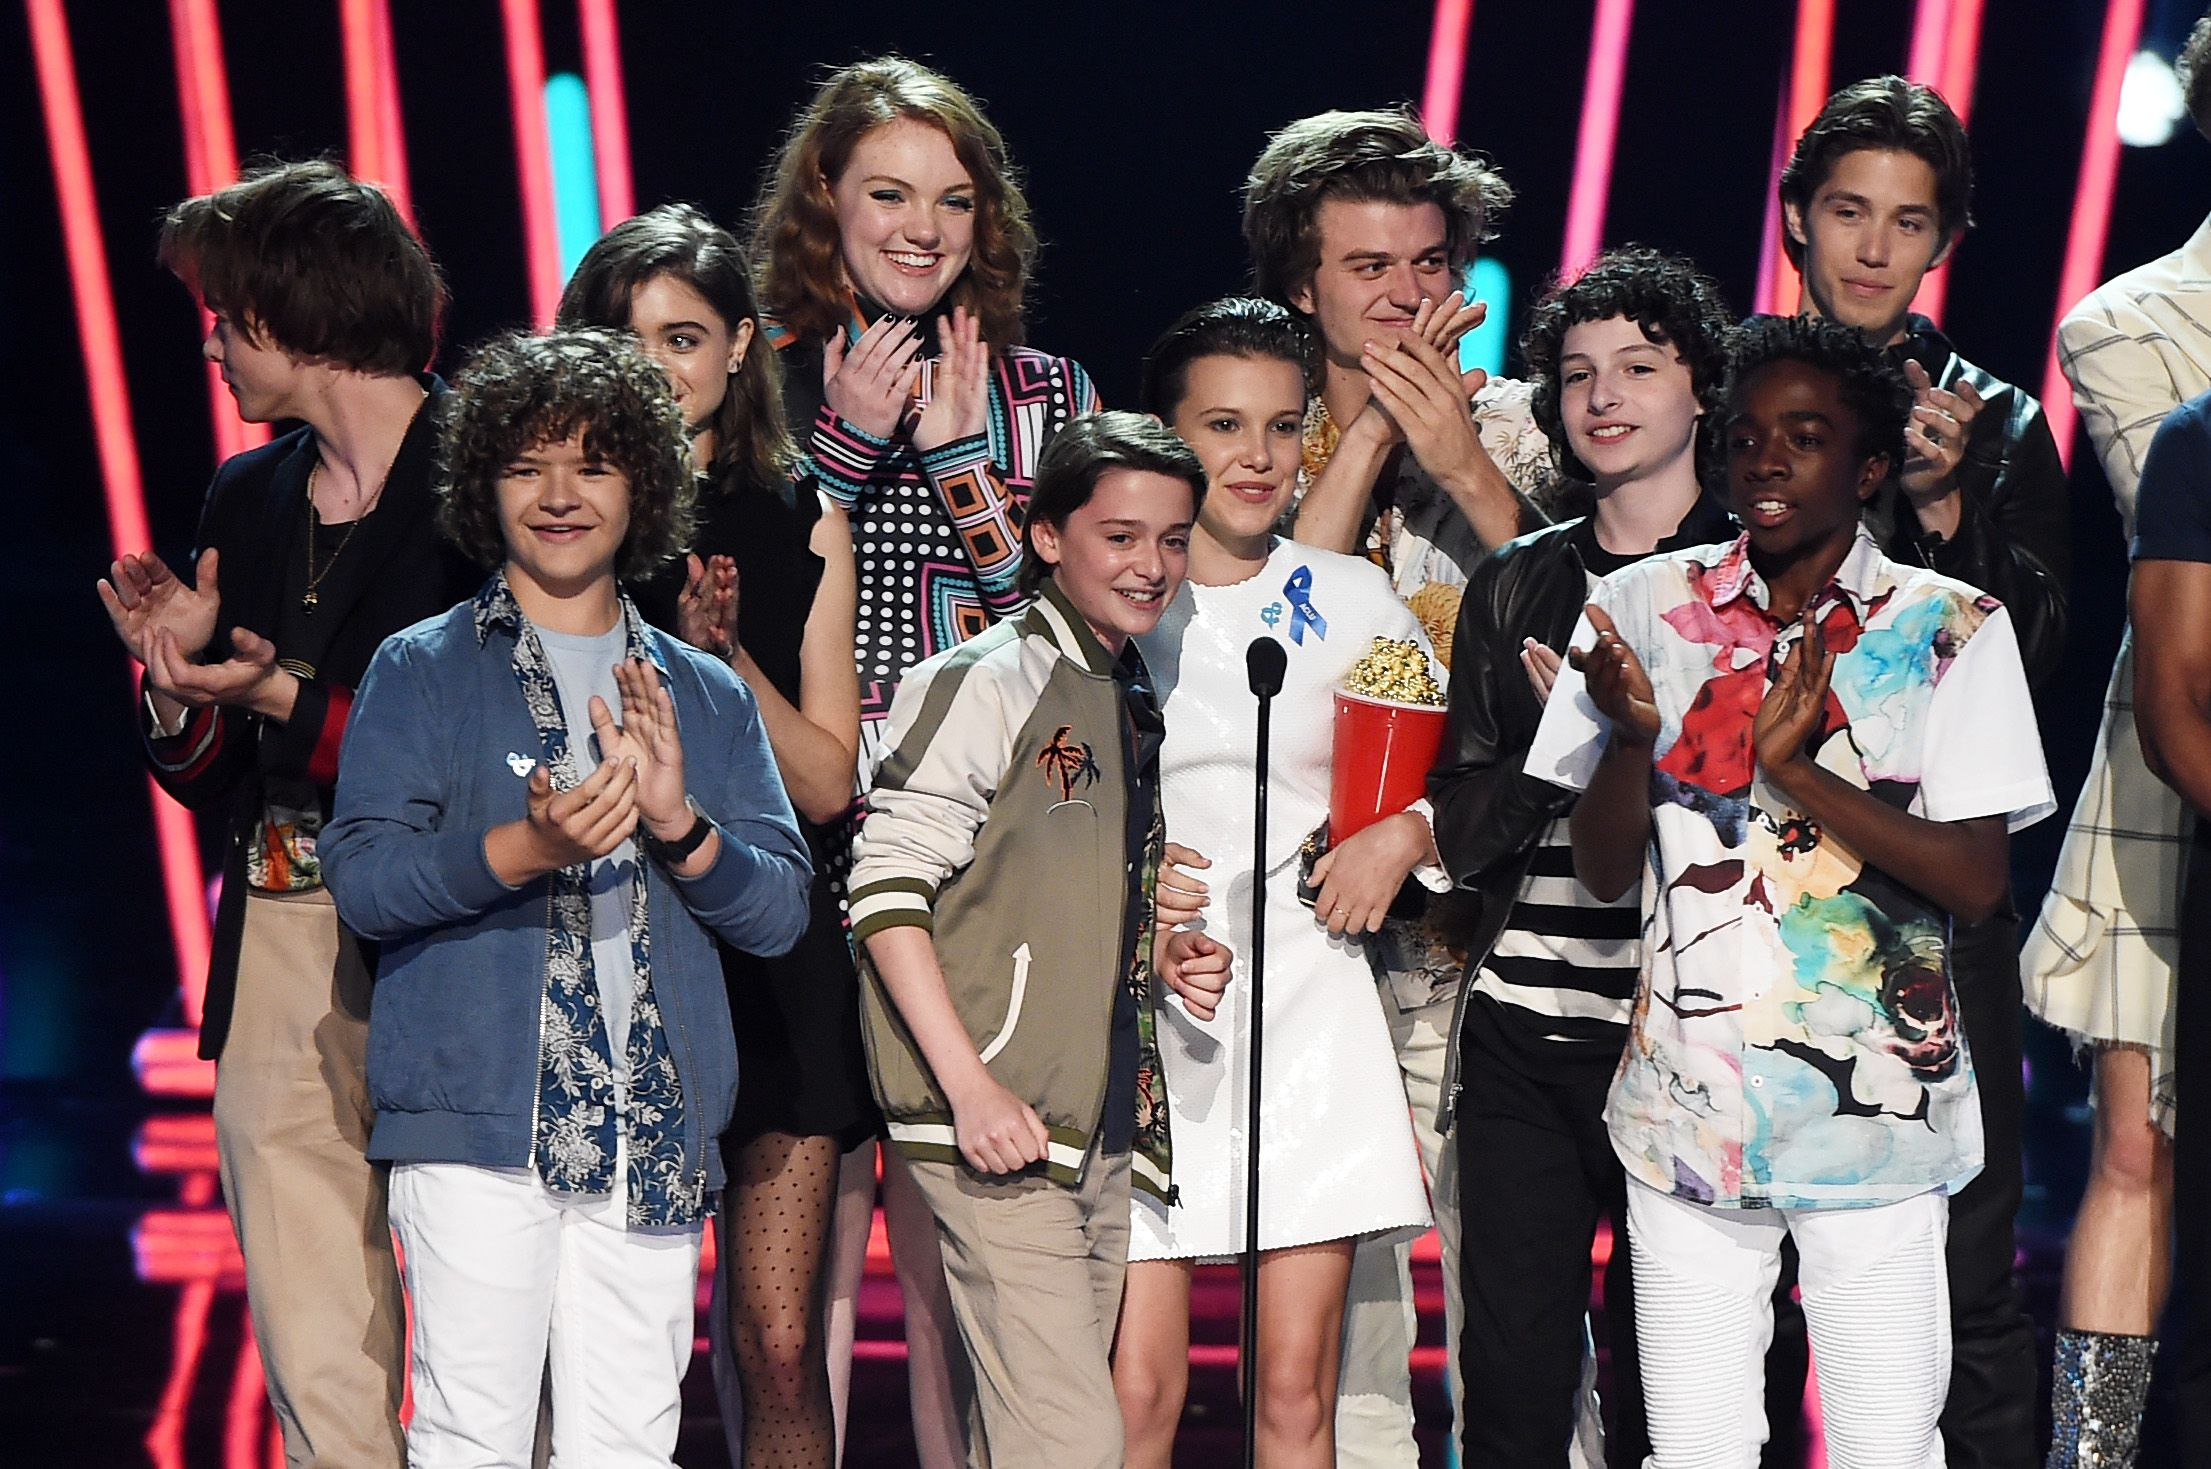 Stranger Things wins at MTV Movie & TV Awards